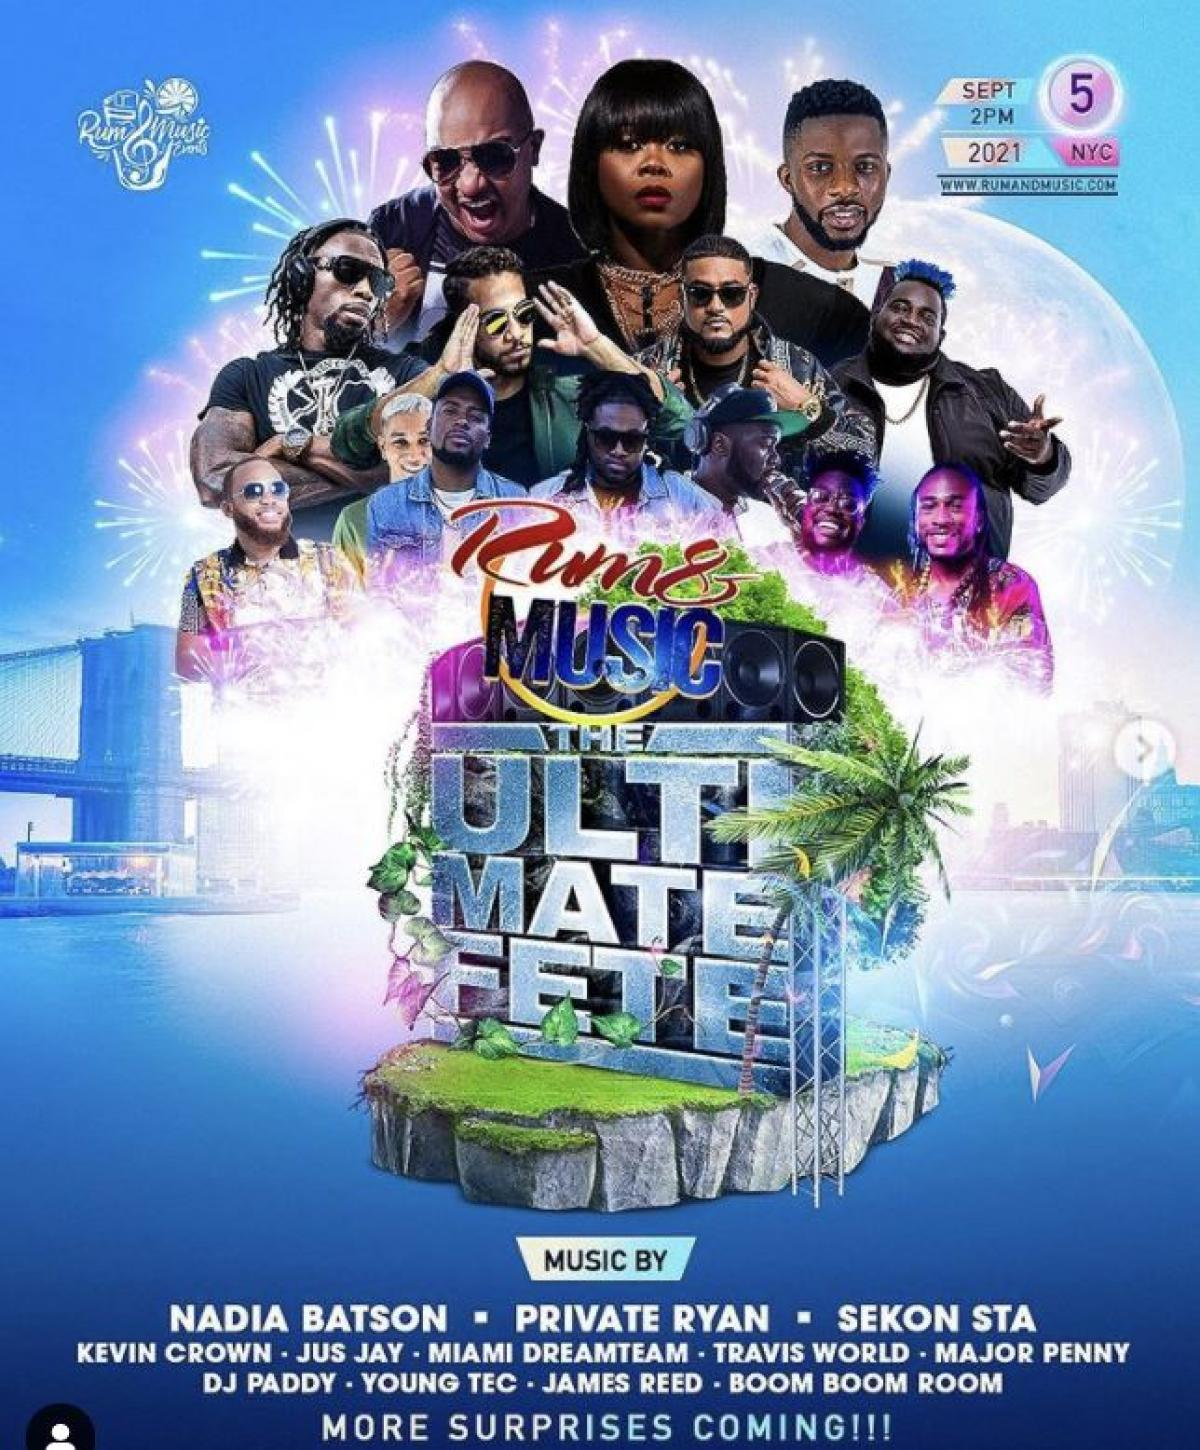 Rum and Music : The Ultimate Fete flyer or graphic.